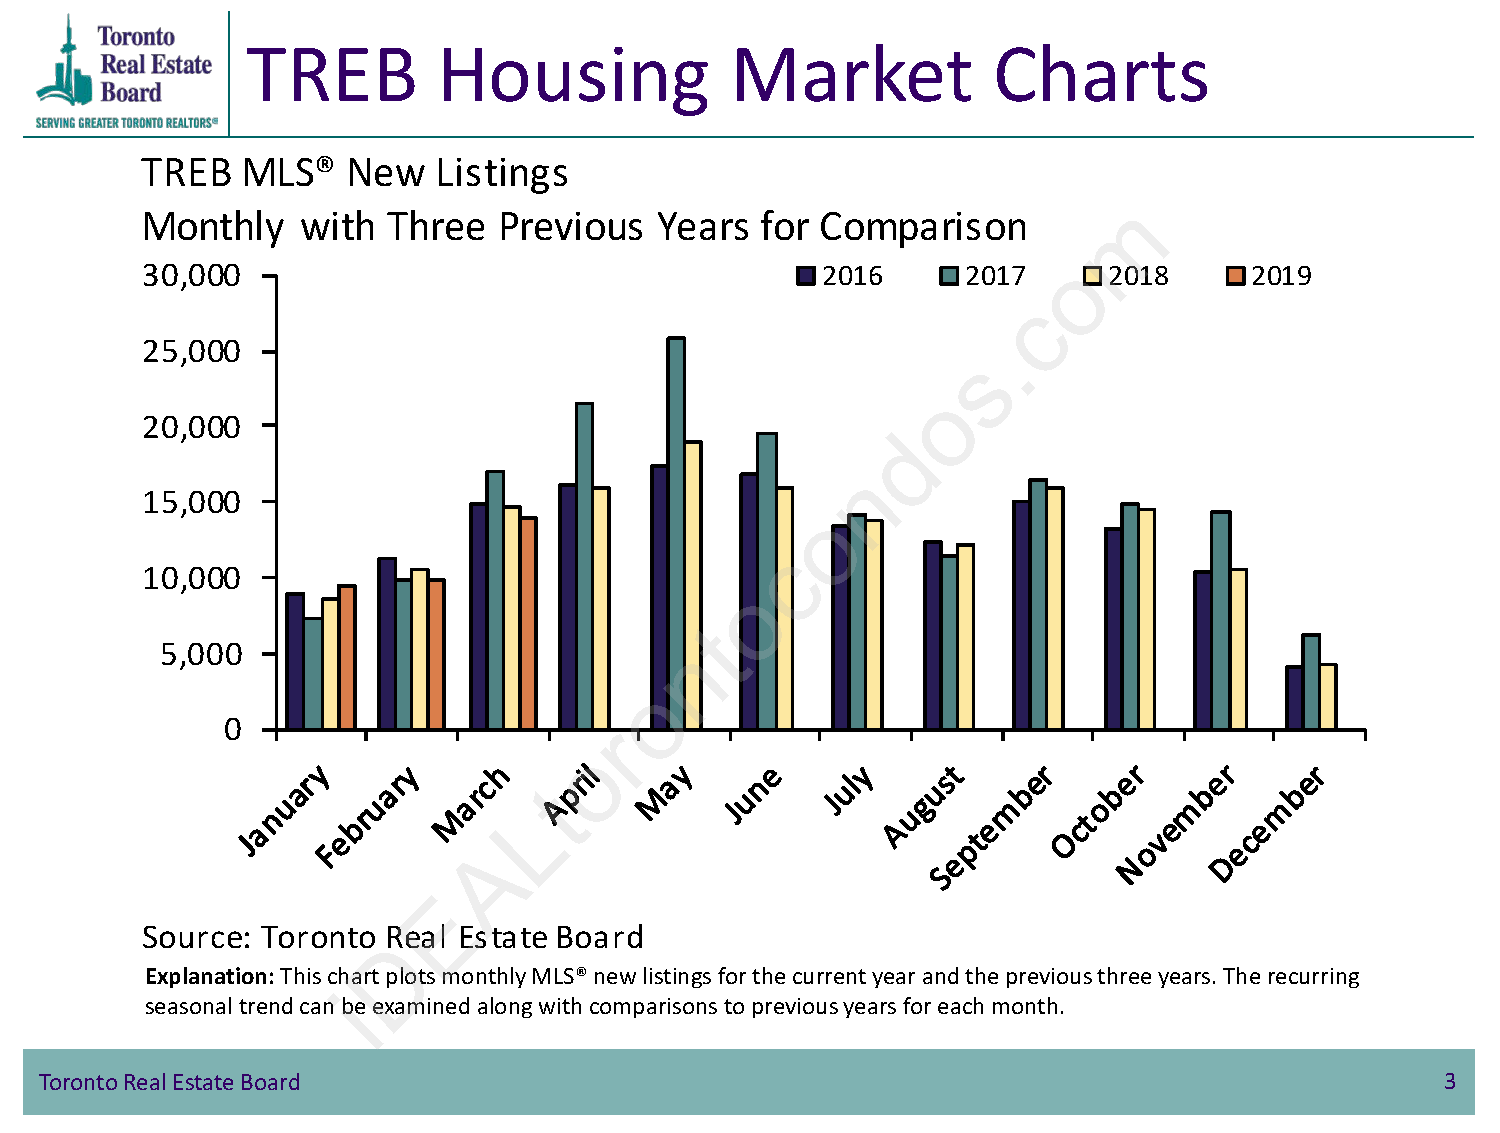 TREB Toronto MLS New Listings